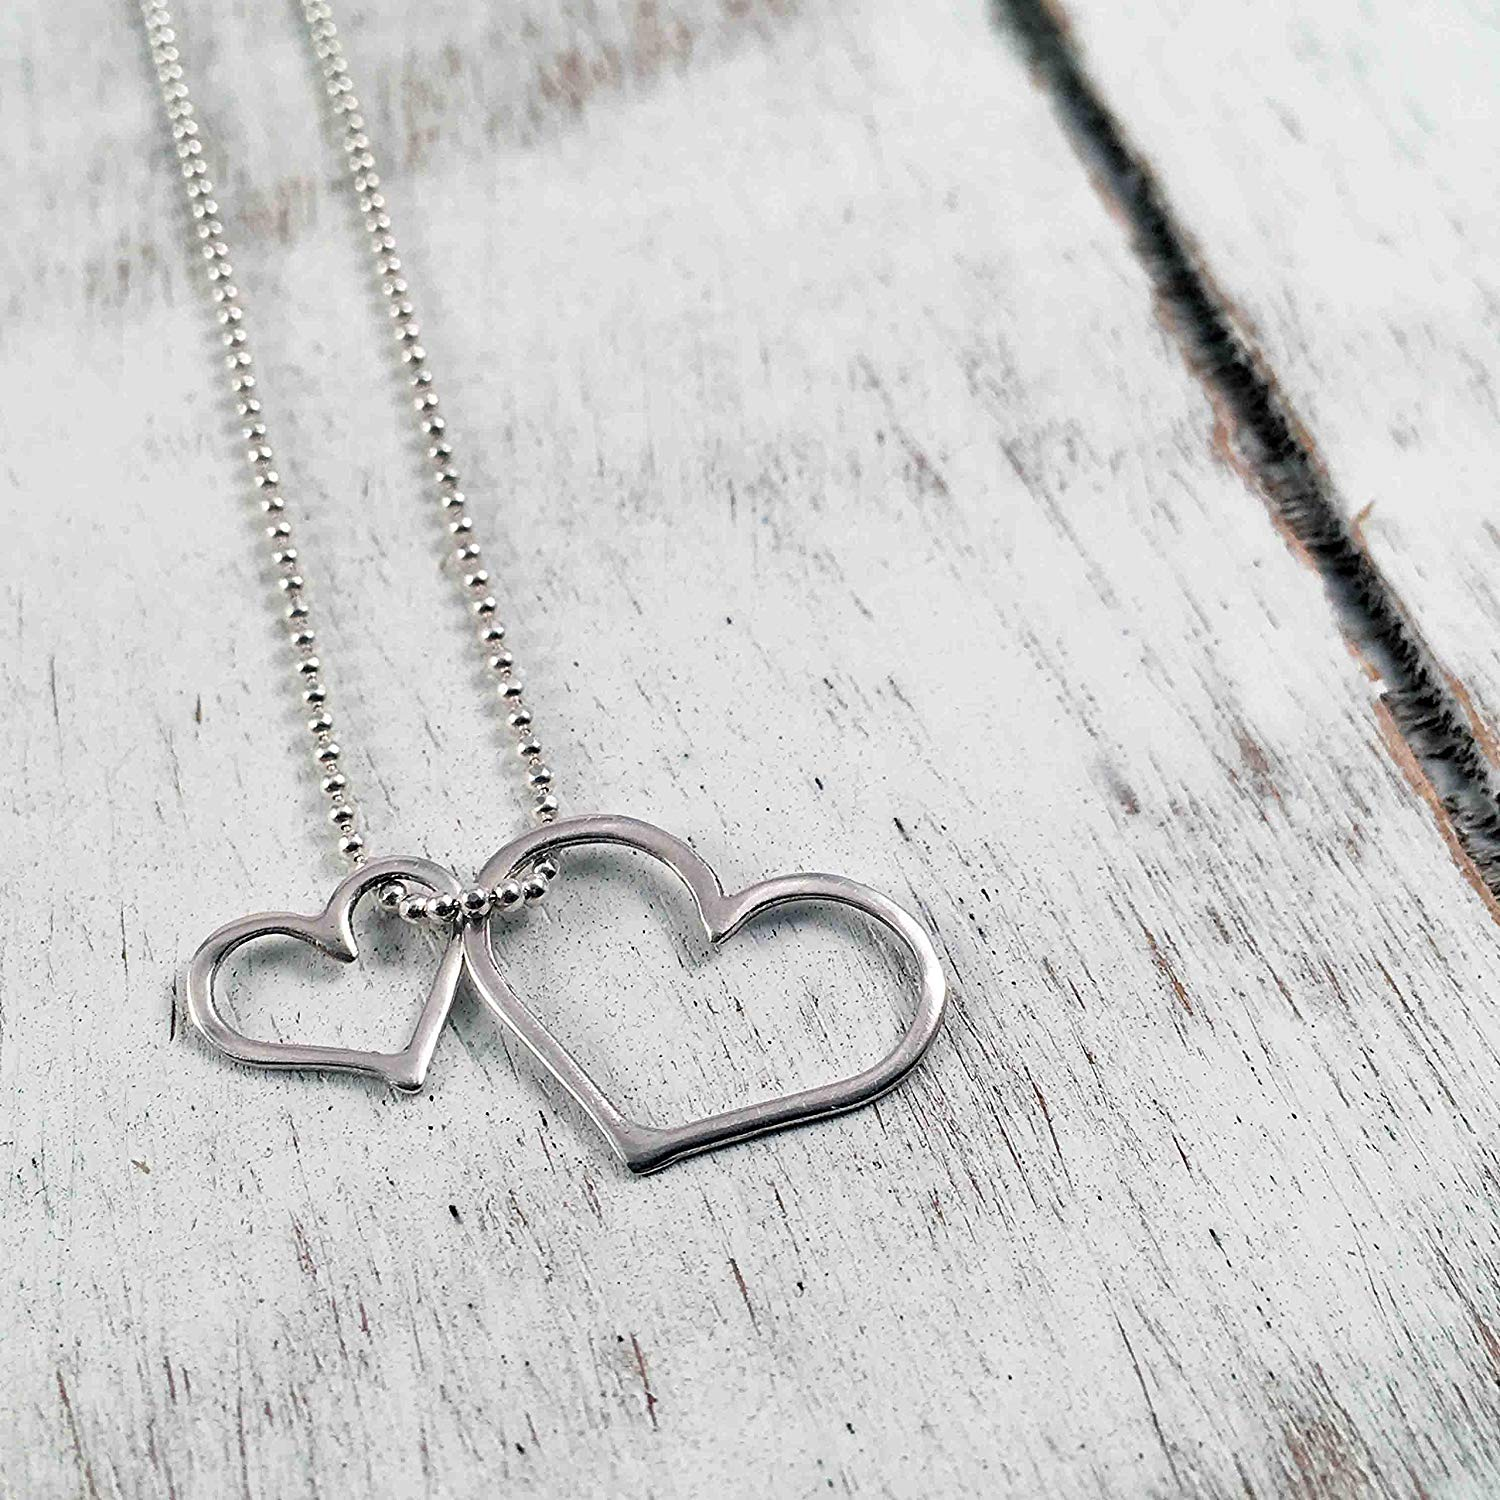 "Double Open Heart Pendant Charm Necklace, Sterling Silver 925 Polished Finish, Chain 17.5"" long, Handmade in Peru by Claudia Lira. Two Hearts. Great for Gift Sets"